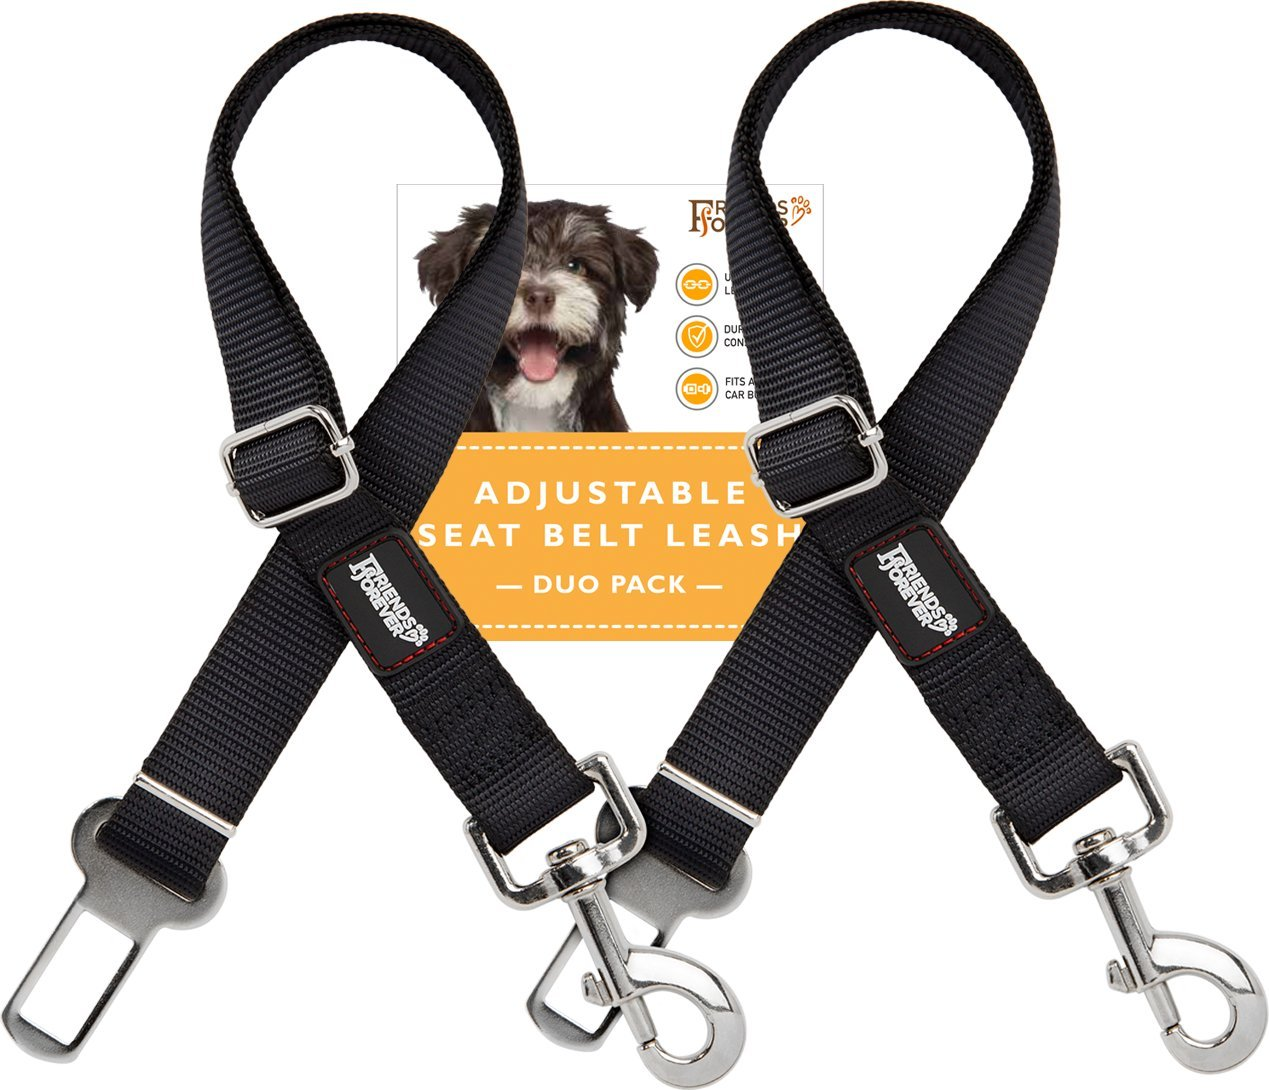 Dog Seat Belt HarnessAdjustable Pet Dog Cat Safety Leads Car Vehicle Seat Bel